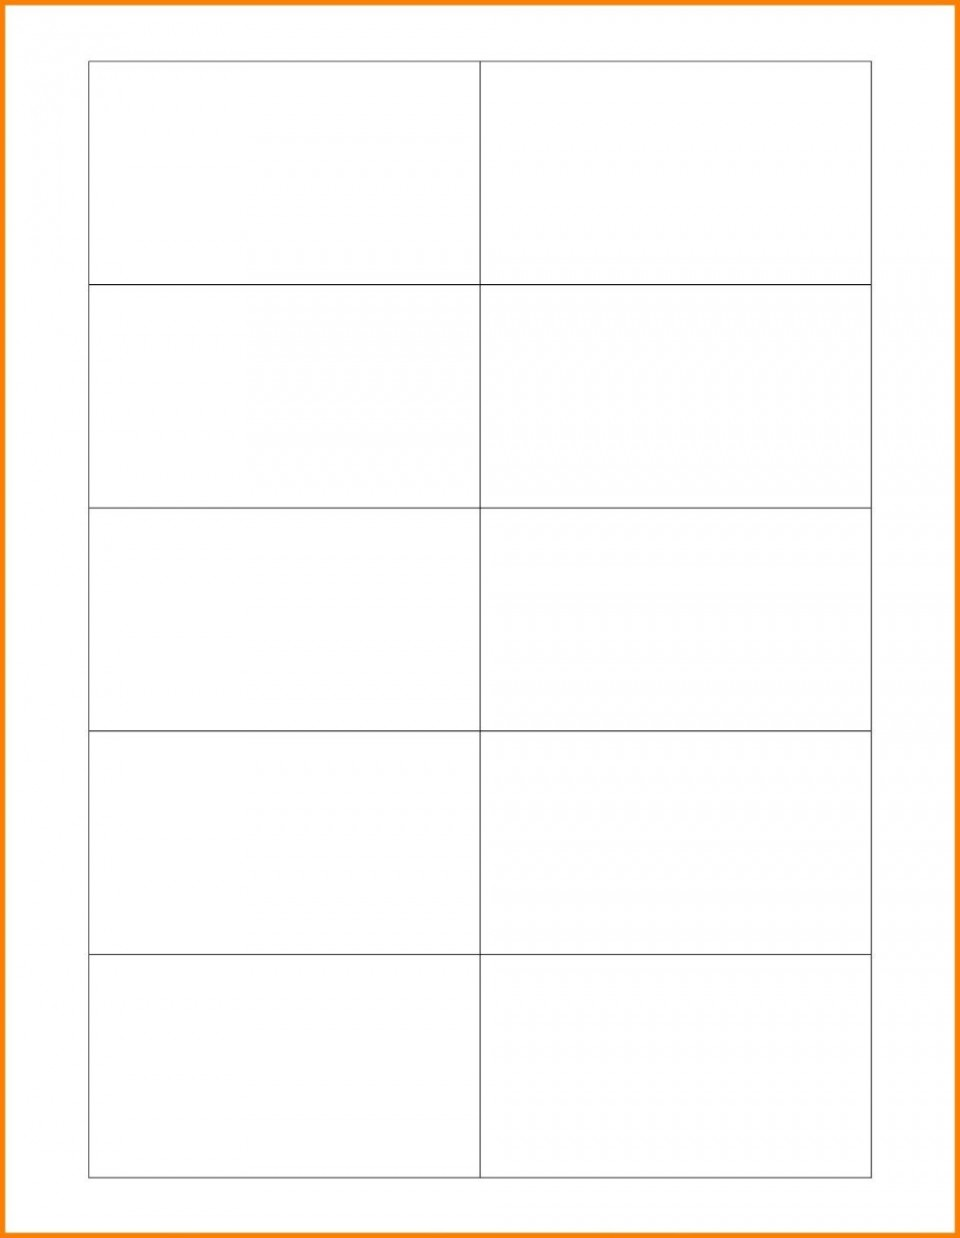 003 Marvelou Plain Busines Card Template Photo  White Free Download Blank Printable Word 2010960